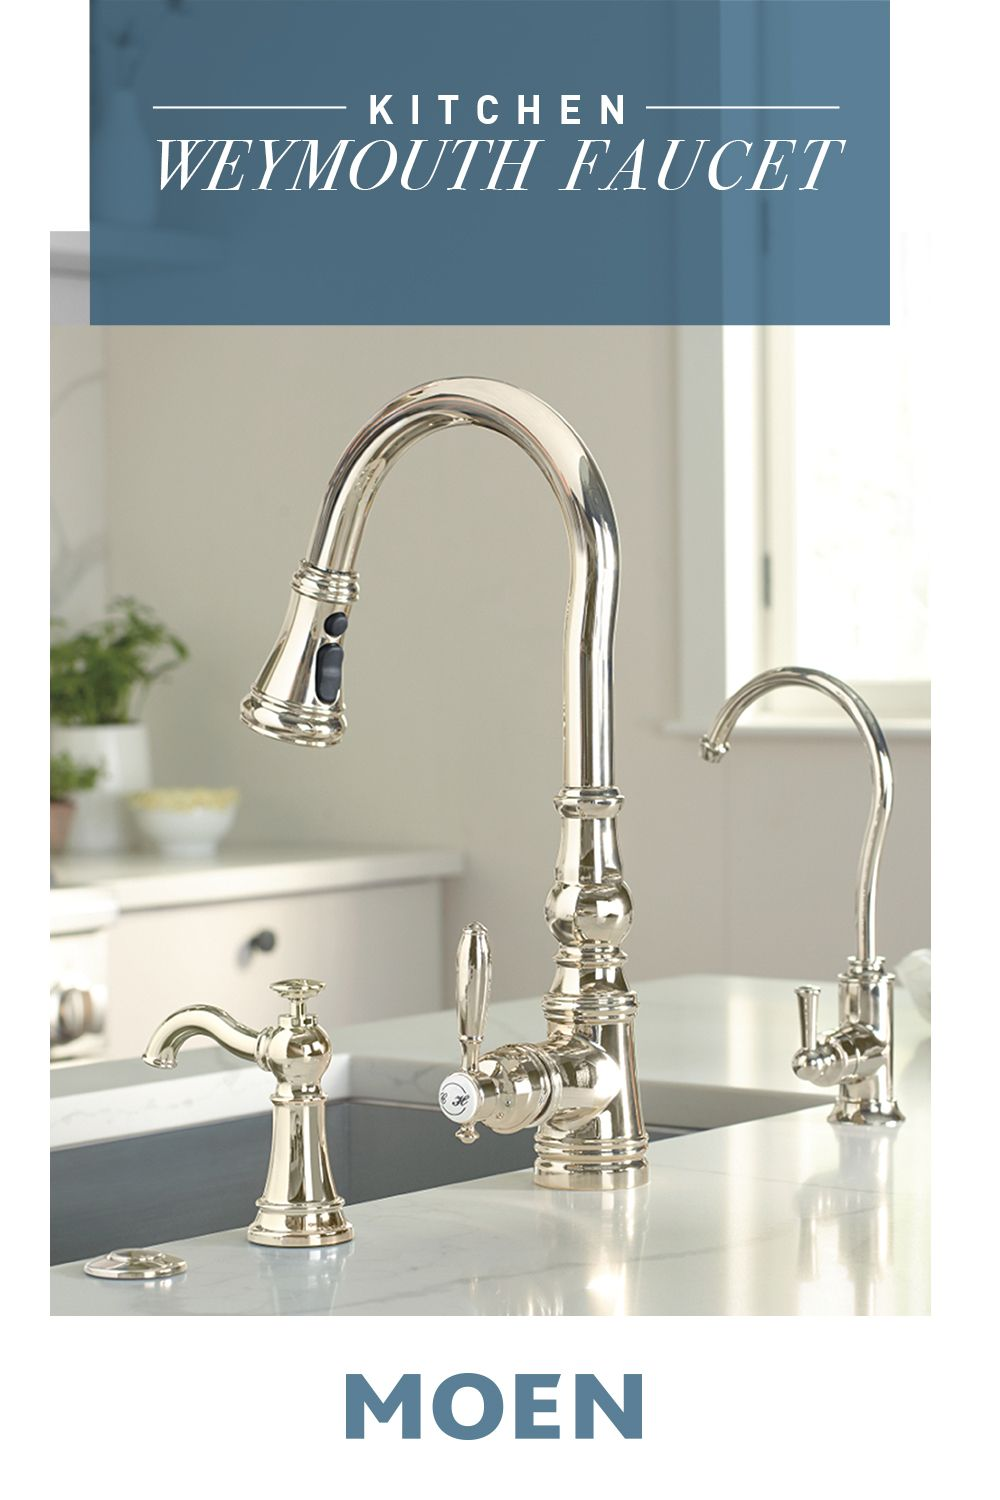 Add New Life To Your Kitchen With Our Weymouth Faucet In A Stunning Polished Nickel Finish Moen Kitchen Faucet Chrome Kitchen Faucet Kitchen And Bath Design